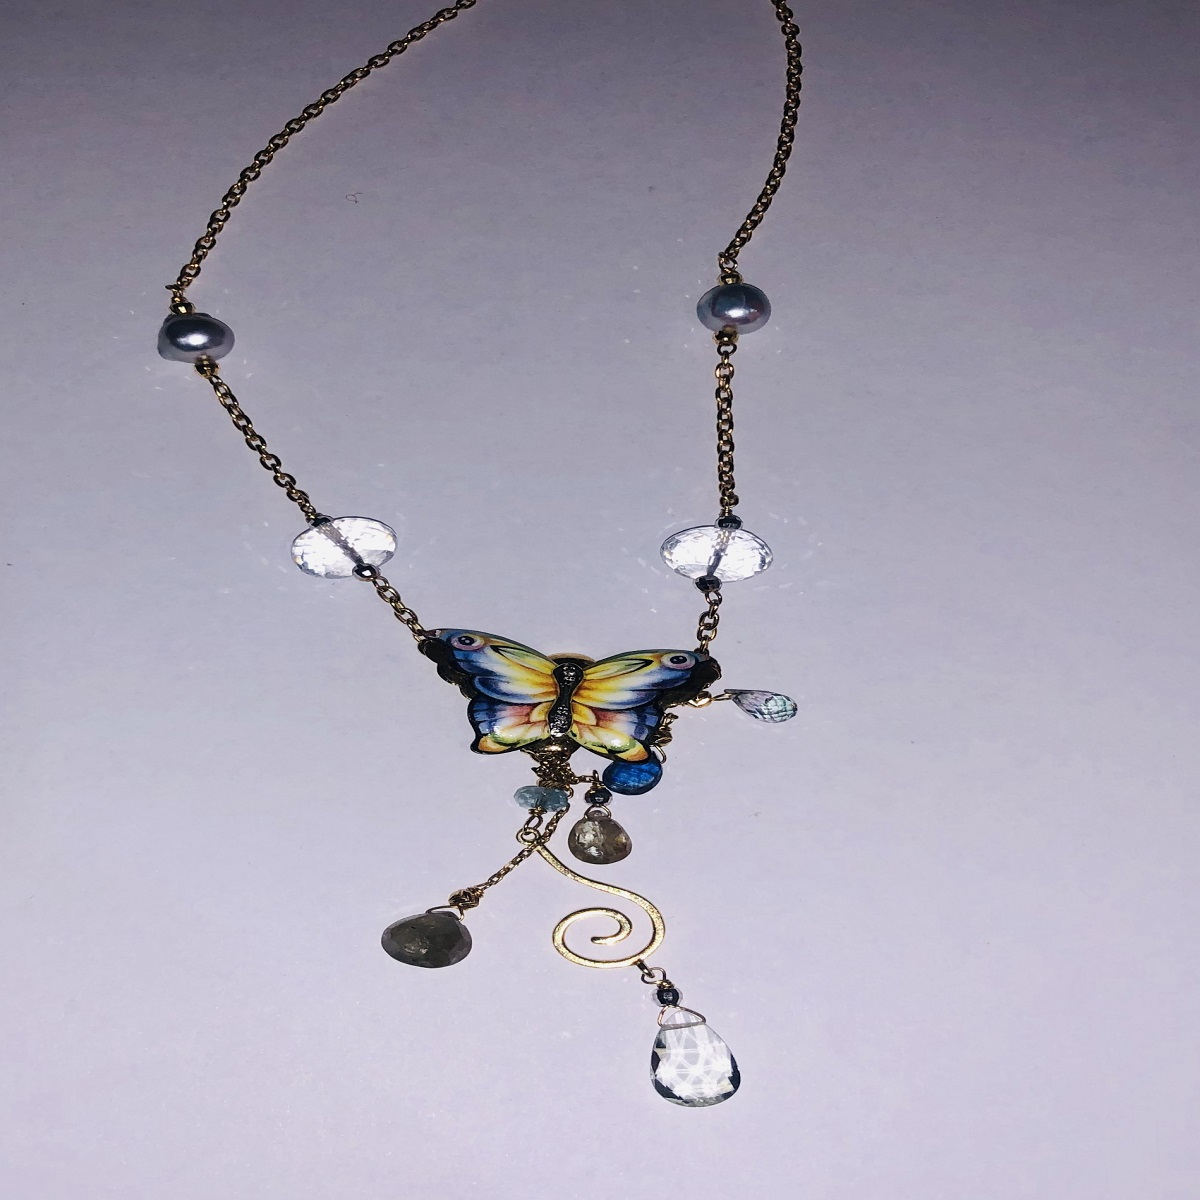 Gabriella Rivalta NECKLACE GOLD WITH light BLUE BUTTERFLY AND PEARLS GAR/FARF